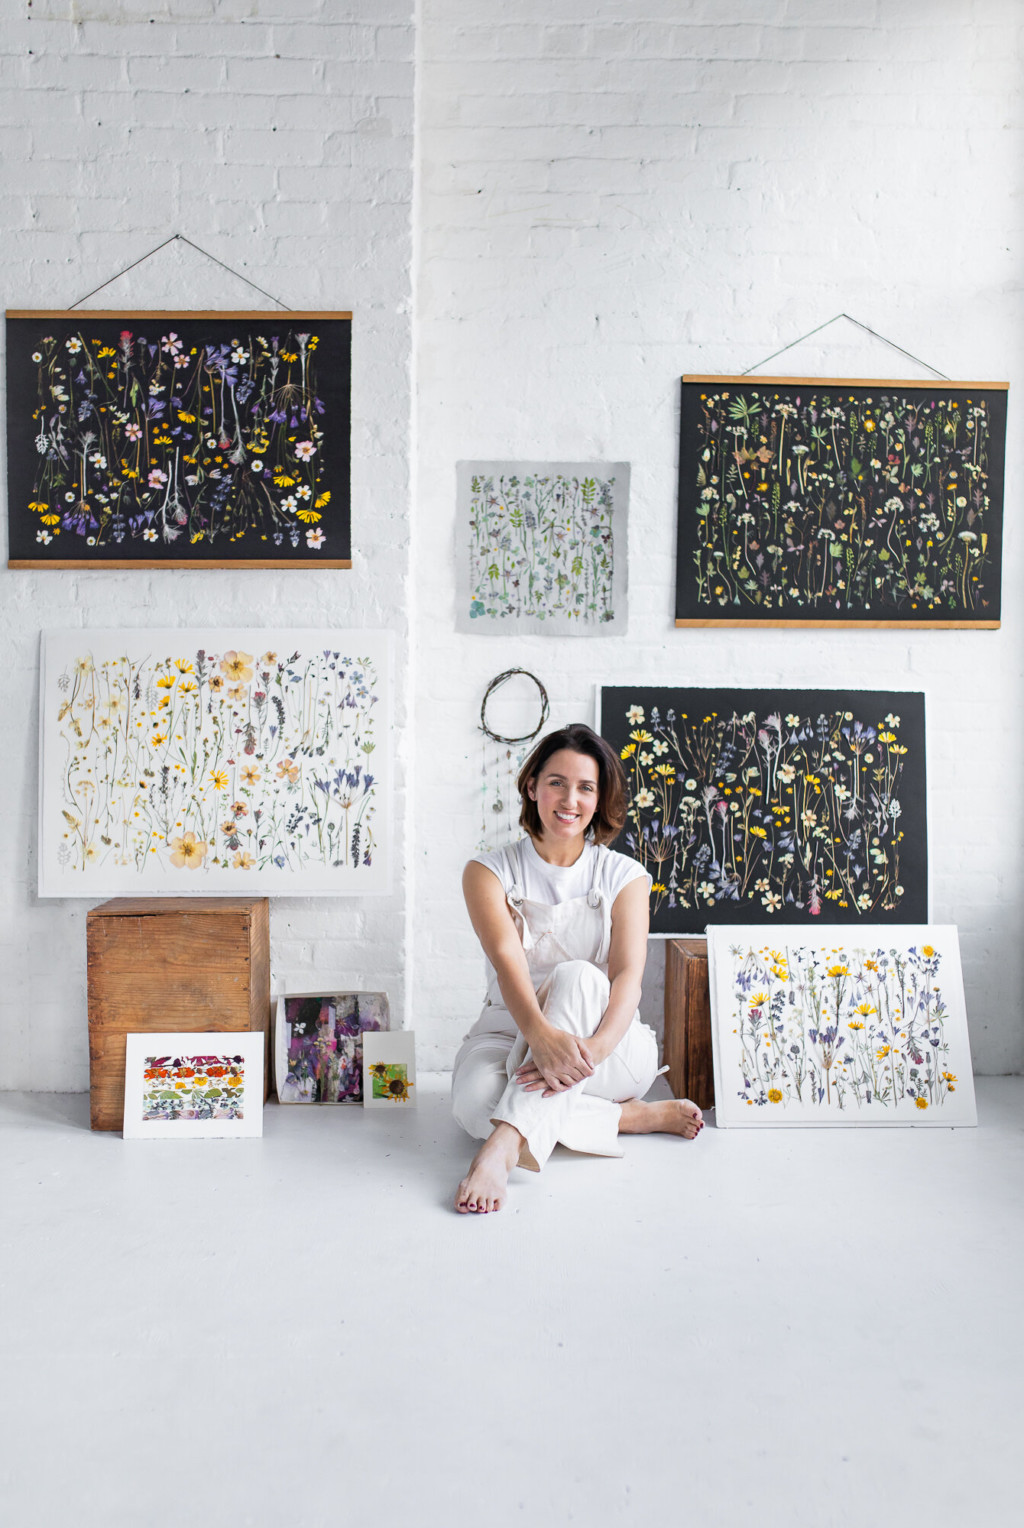 Tricia Paoluccio sits in a white room with lots of intricate botanical artworks on the walls and floor around her.